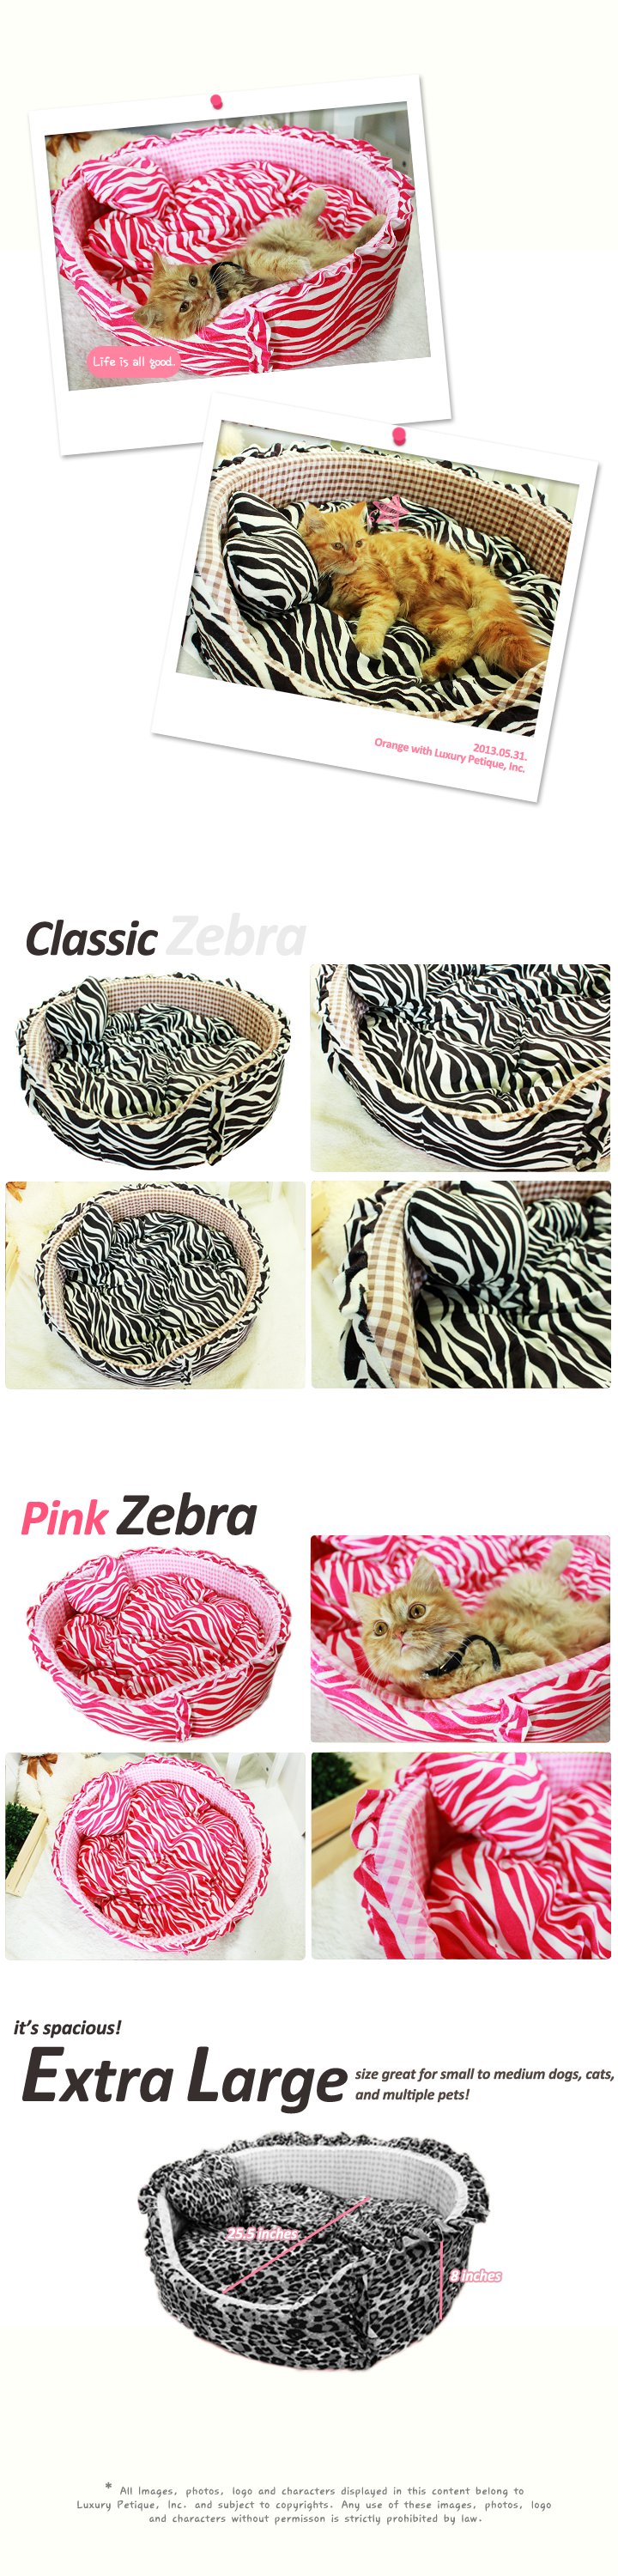 zebra-plush-round-bed-3.png